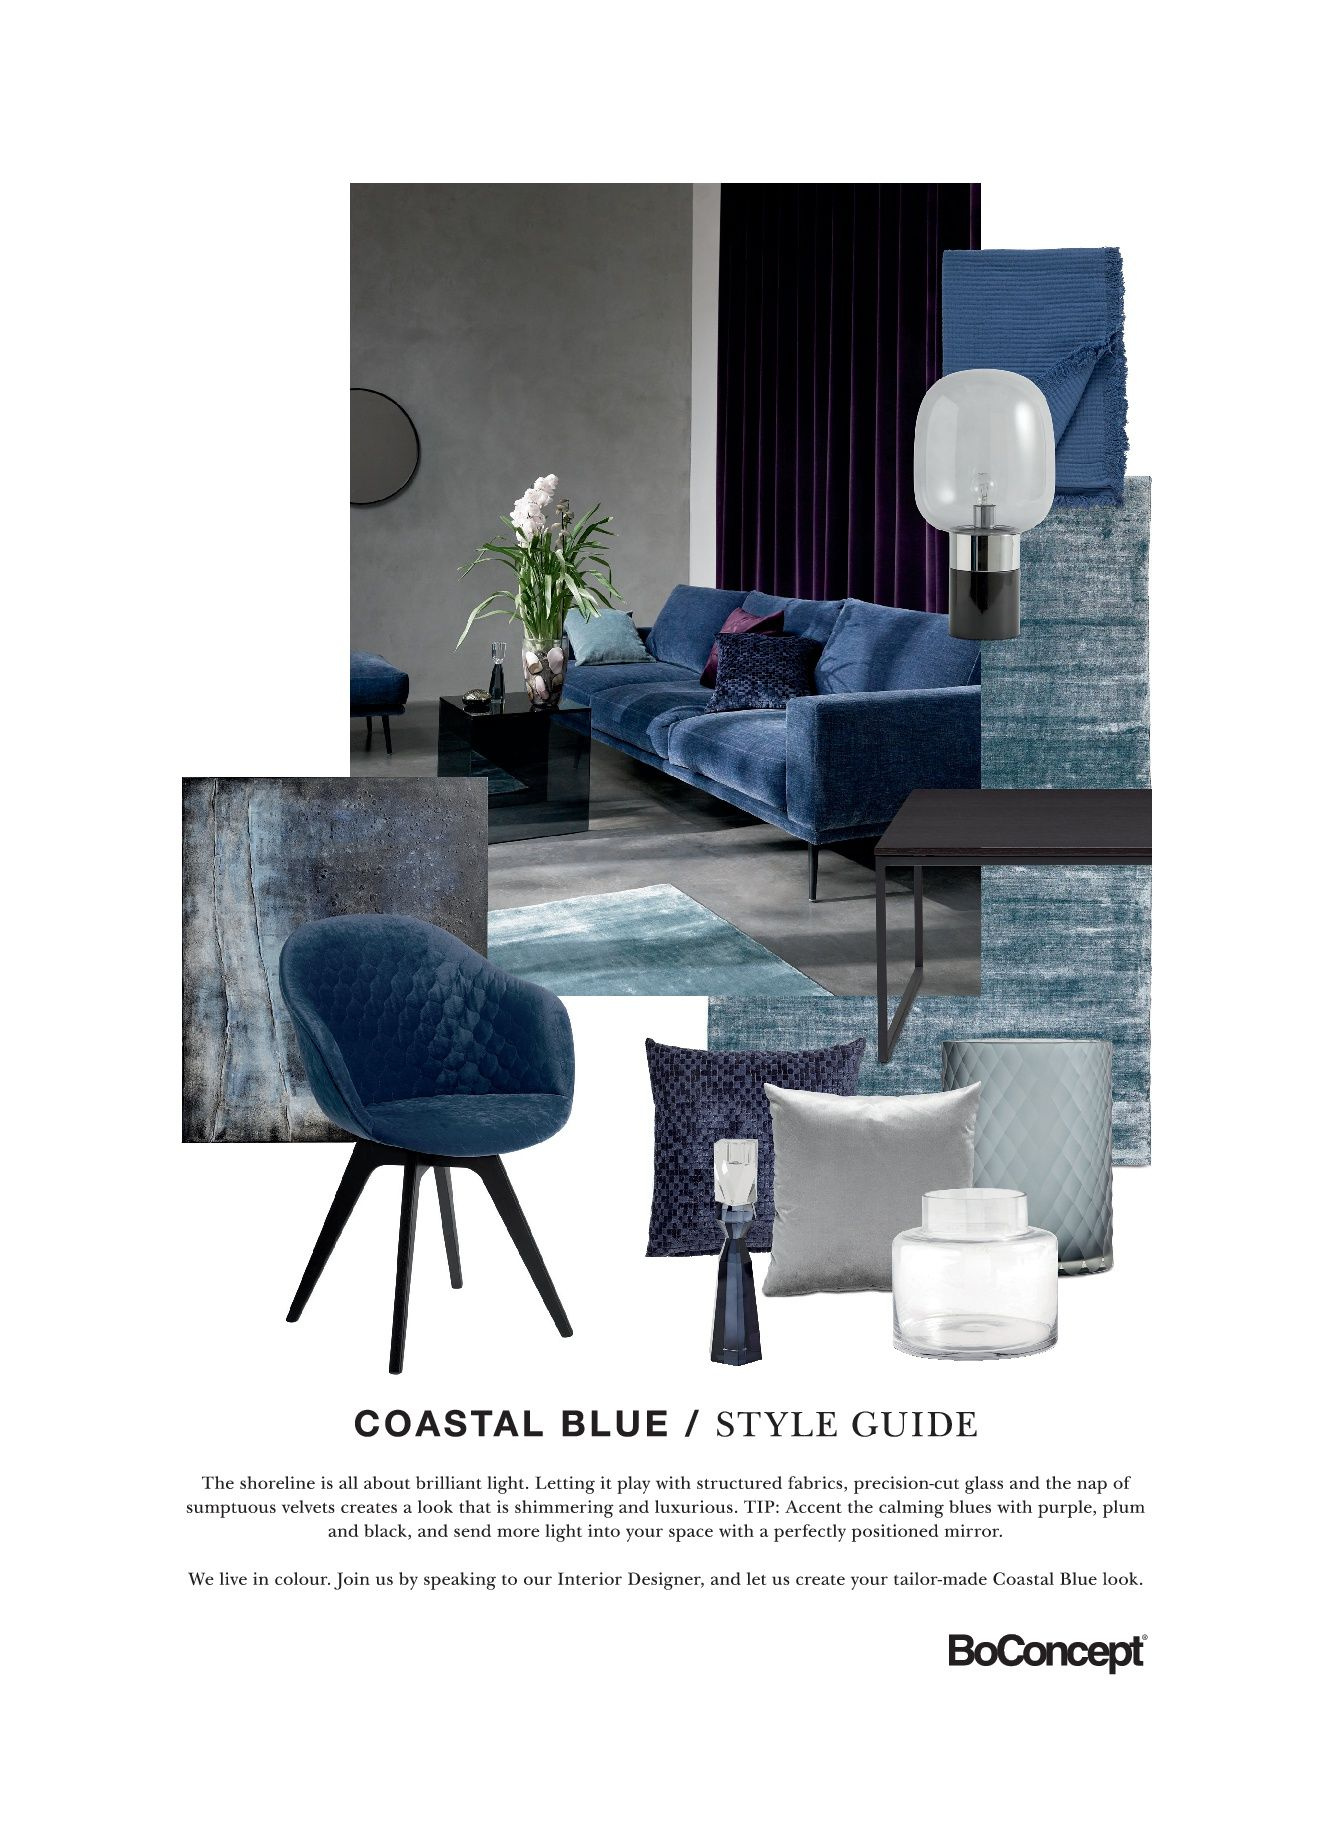 Furniture Brand Boconcept S Style Guide